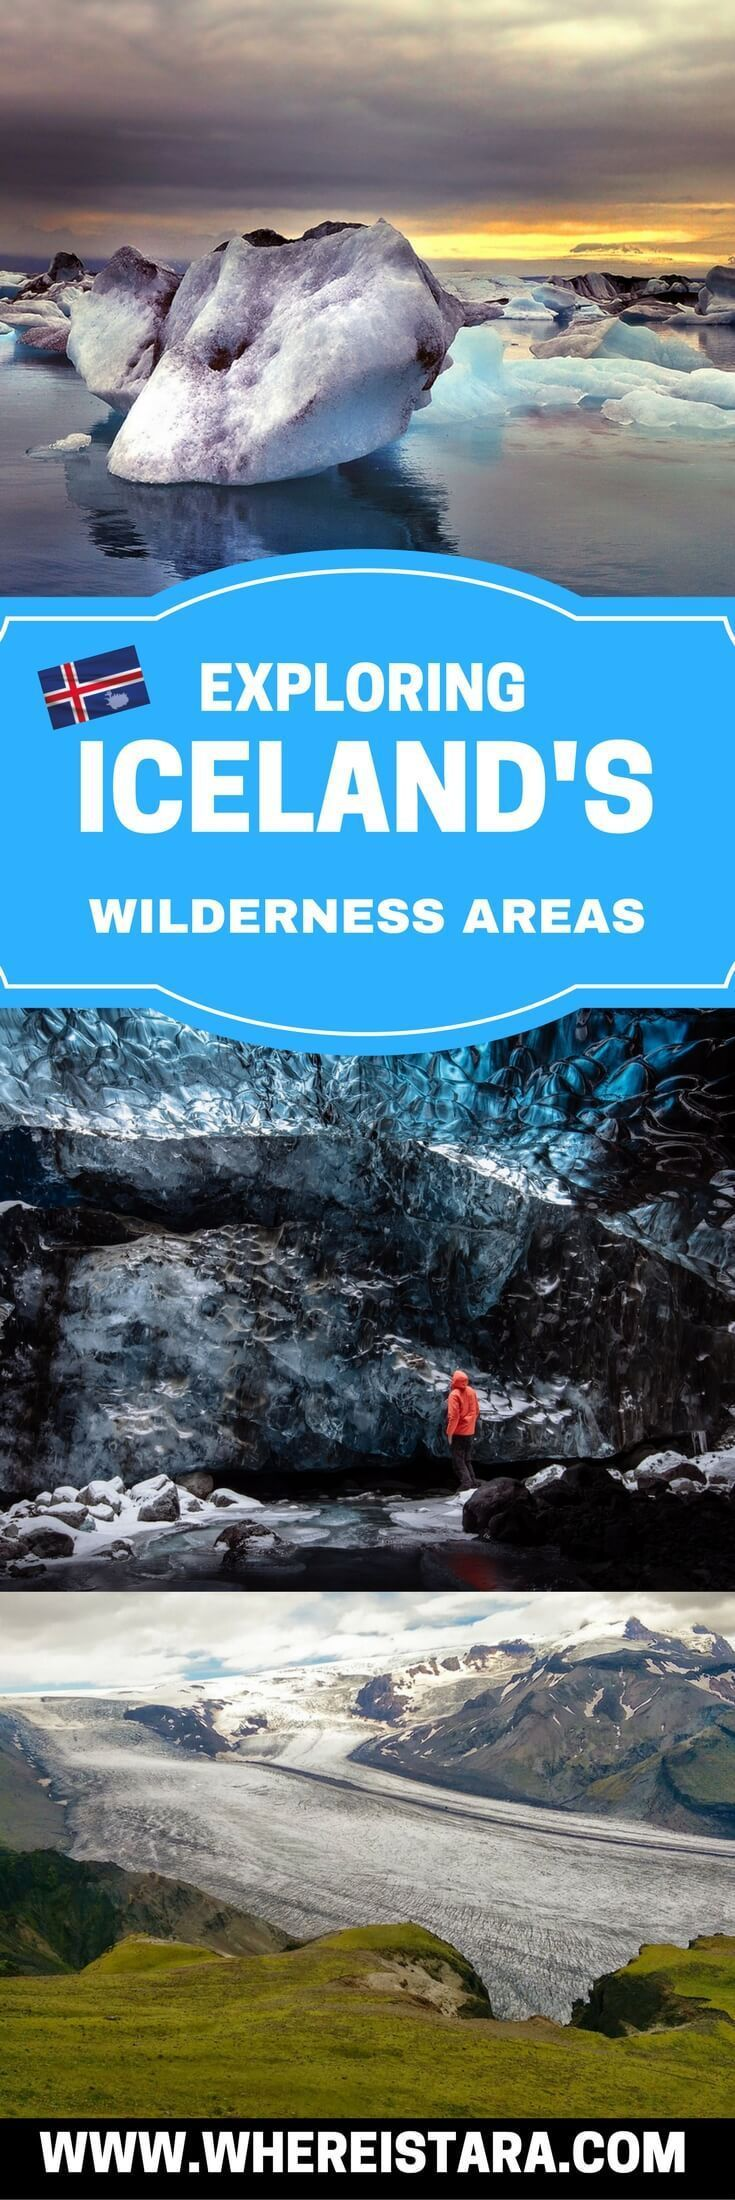 Iceland, the land of fire and ice, is the most sparsely populated country in Europe. Iceland's wilderness areas are STUNNING. From glaciers to volcanoes, there's something for everyone. Here's my guide to exploring the wilderness of Iceland on your next trip.